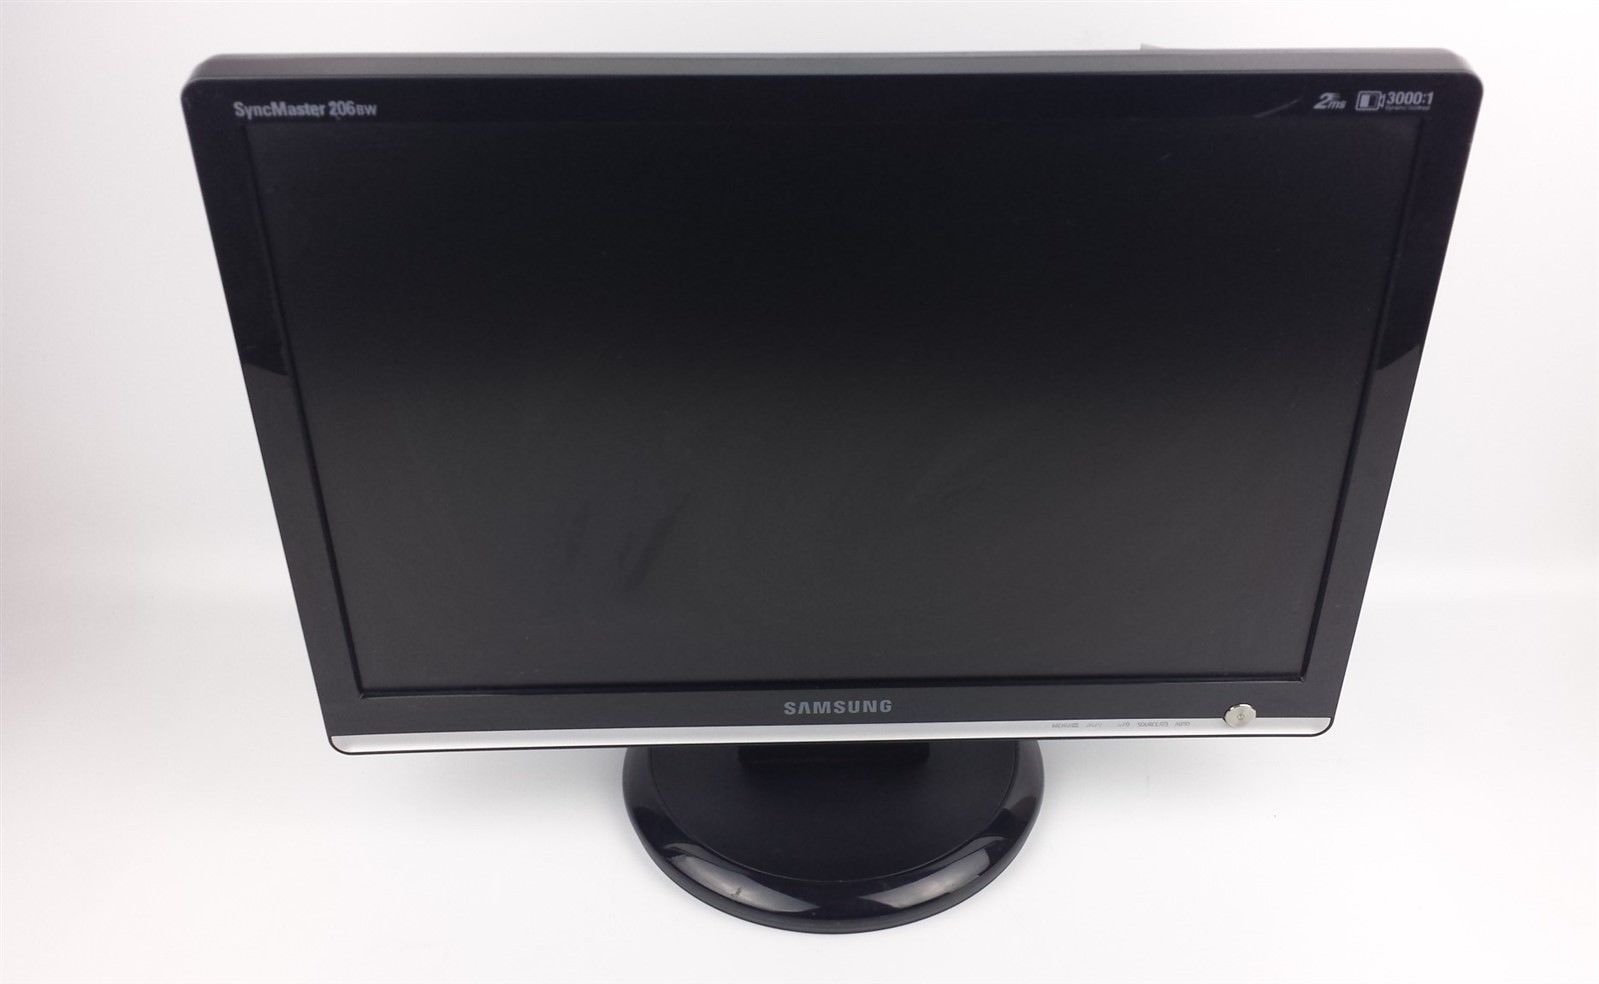 "Samsung SyncMaster 206BW Widescreen LCD Computer Monitor 20"" w/ Power & VGA Cord"